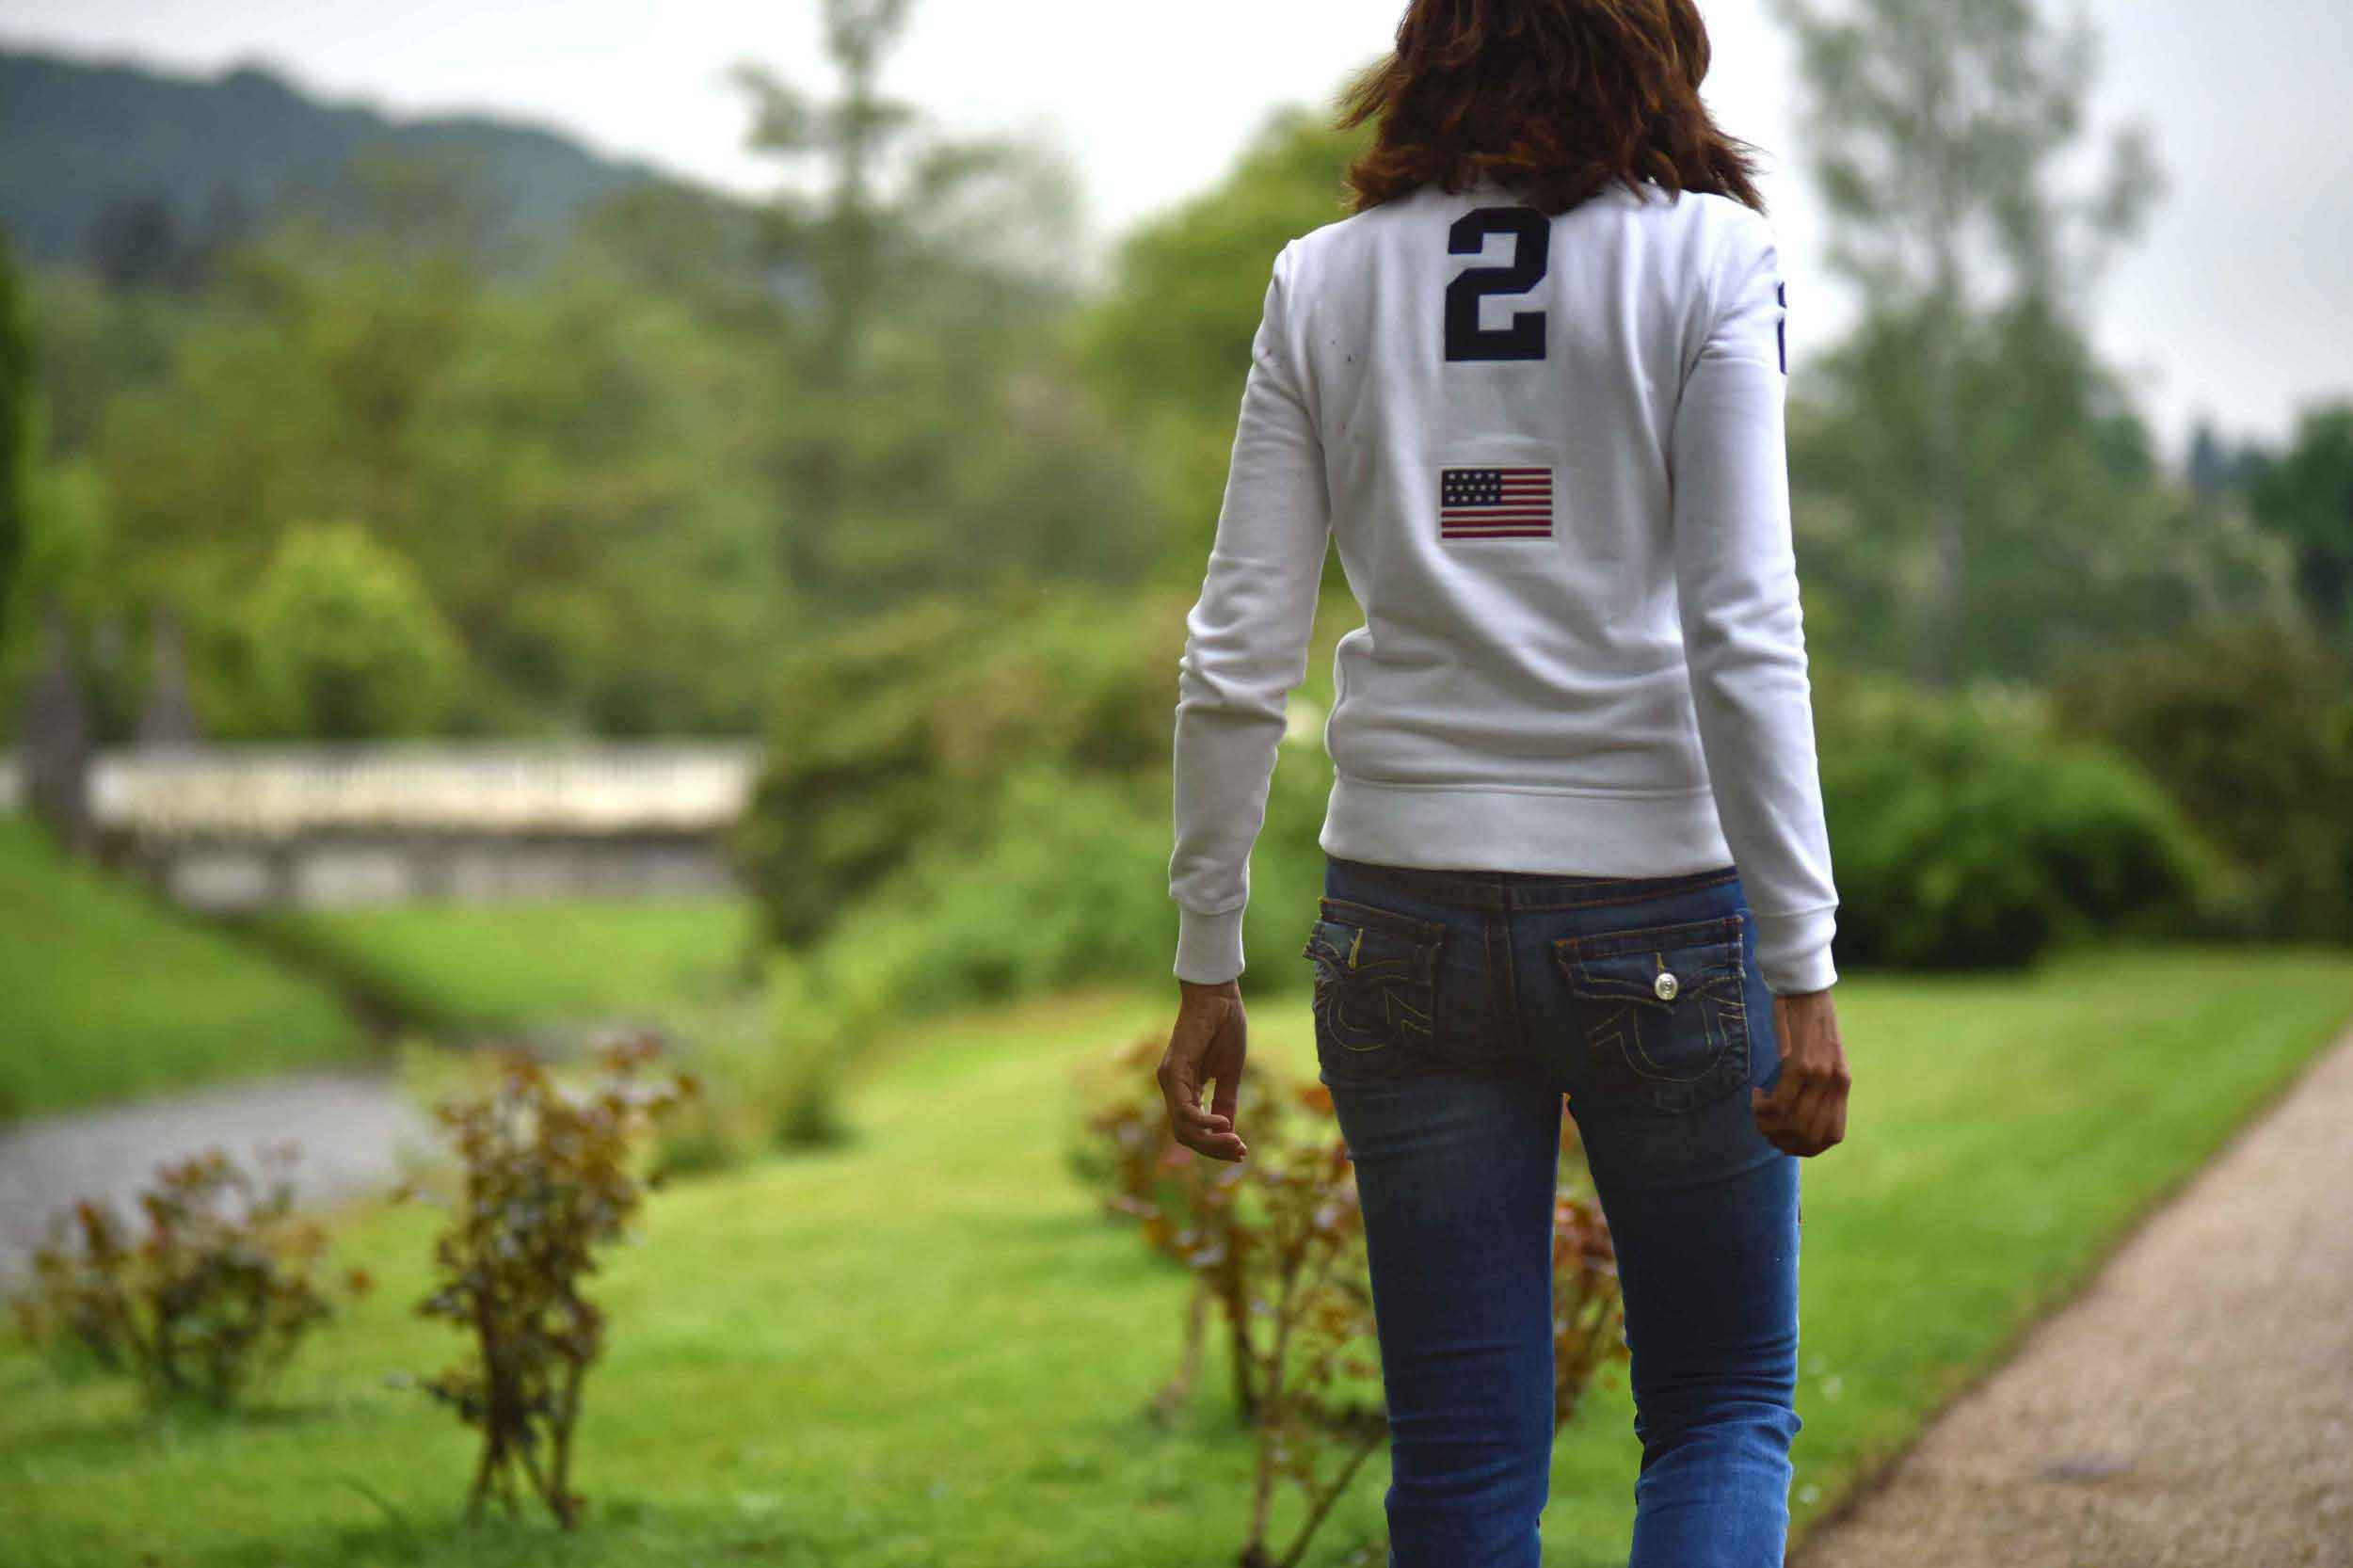 Polo Ralph Lauren, white fleece jacket, Goenneranlage, Baden Baden, Germany. Image©thingstodot.com